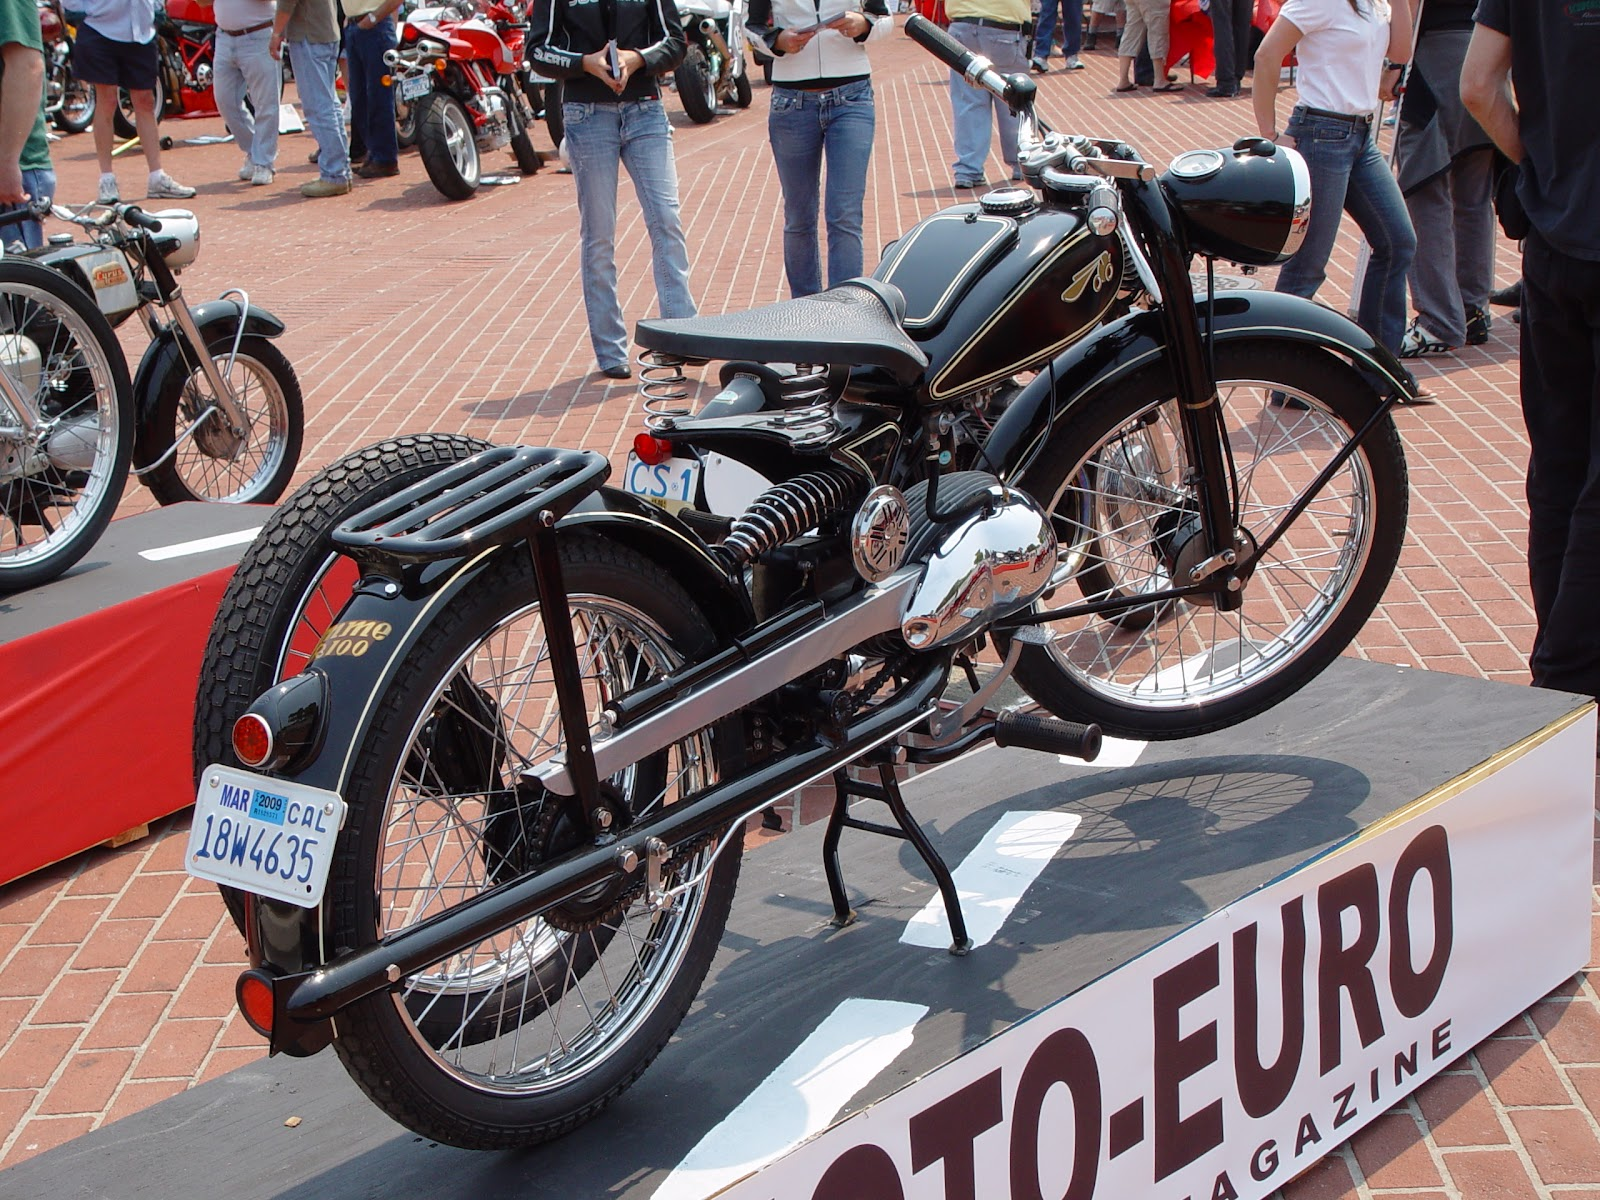 Riedel Imme R100 Luxus Motorcycle